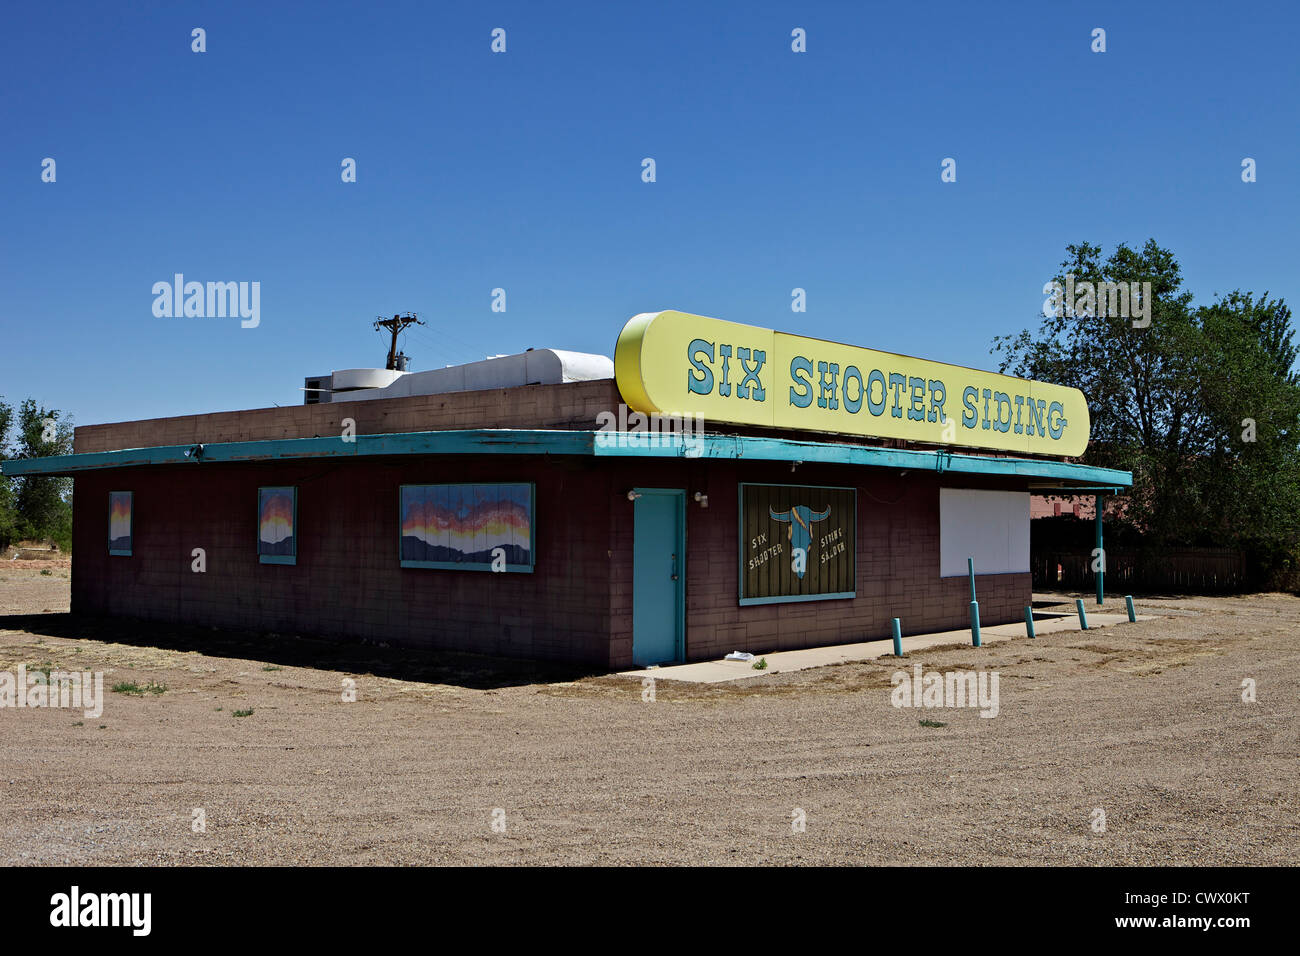 Six Shooter Siding along Route 66 in Tucumcari, New Mexico - Stock Image